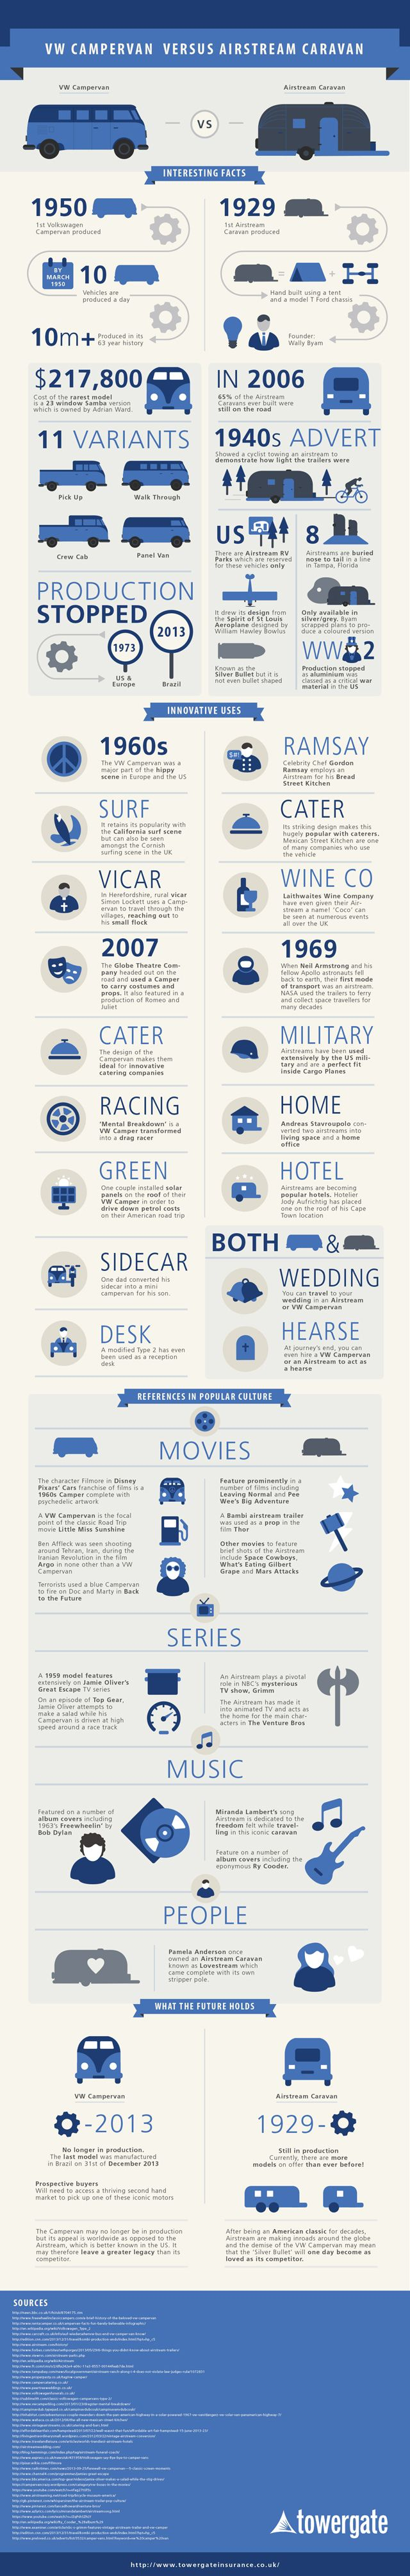 Volkswagen Campervan vs. Airstream Caravan  [by Towergate Insurance -- via #tipsographic]. More at tipsographic.com